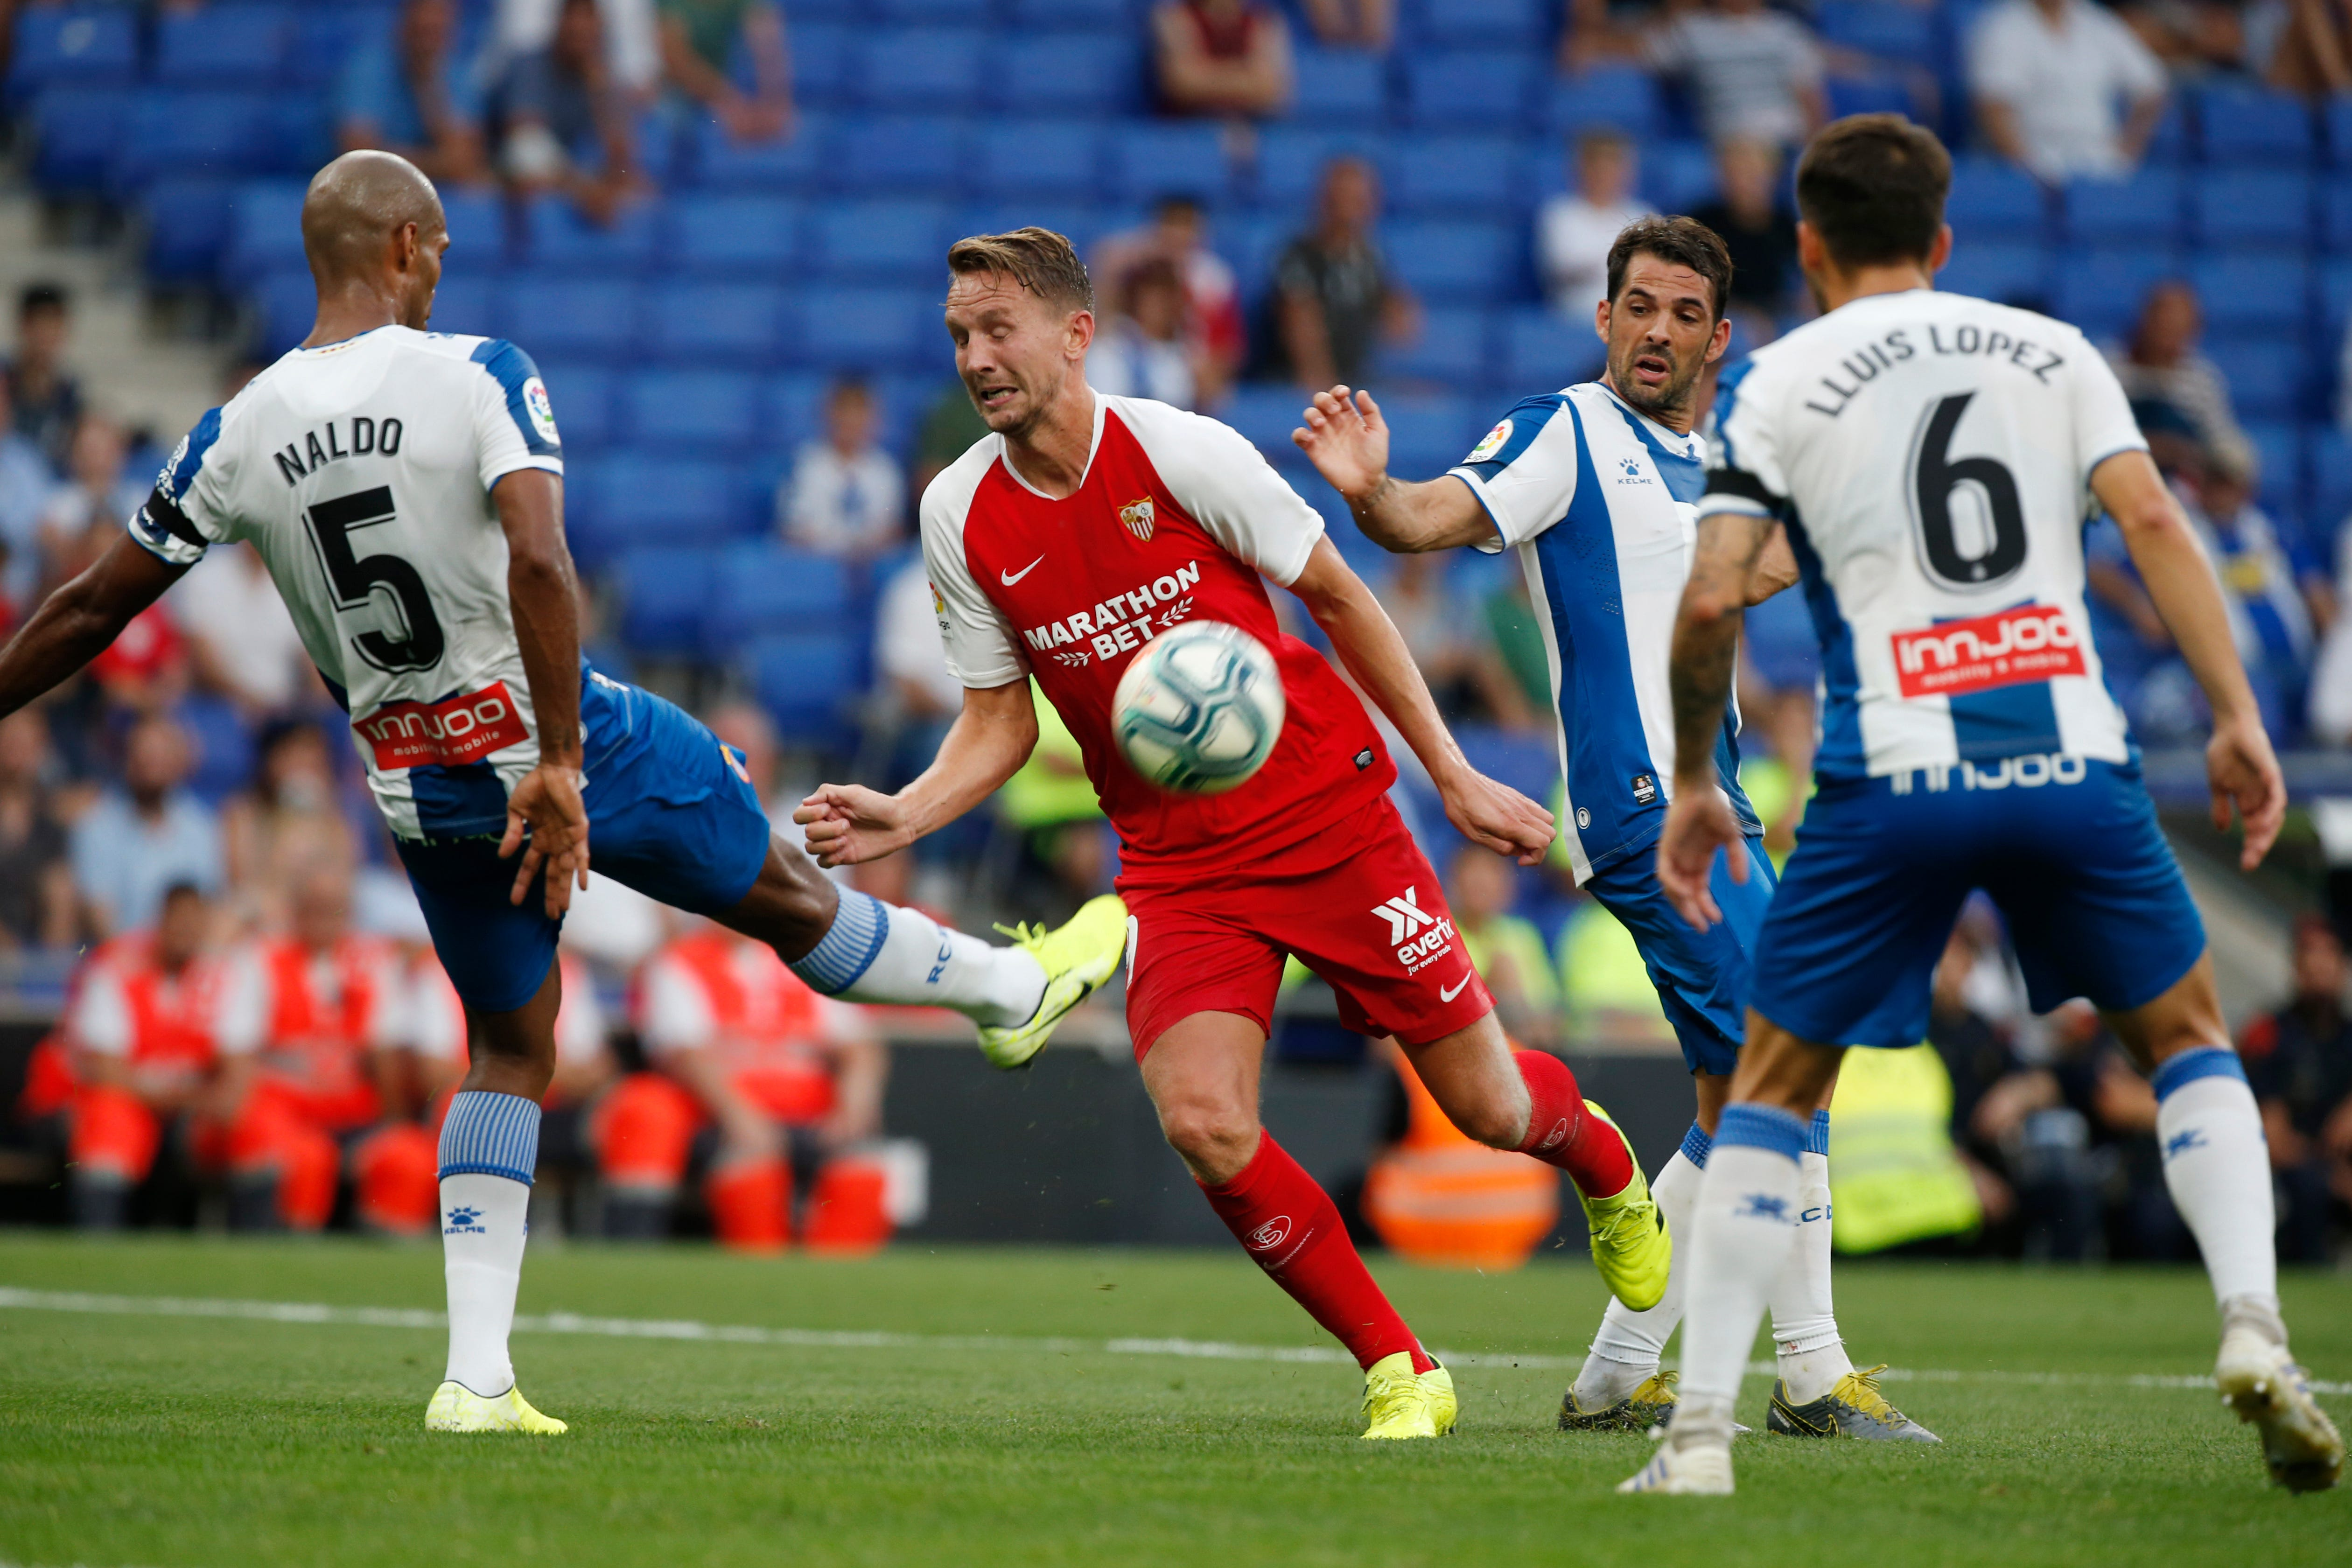 Revamped Atlético off to winning start in Spanish league